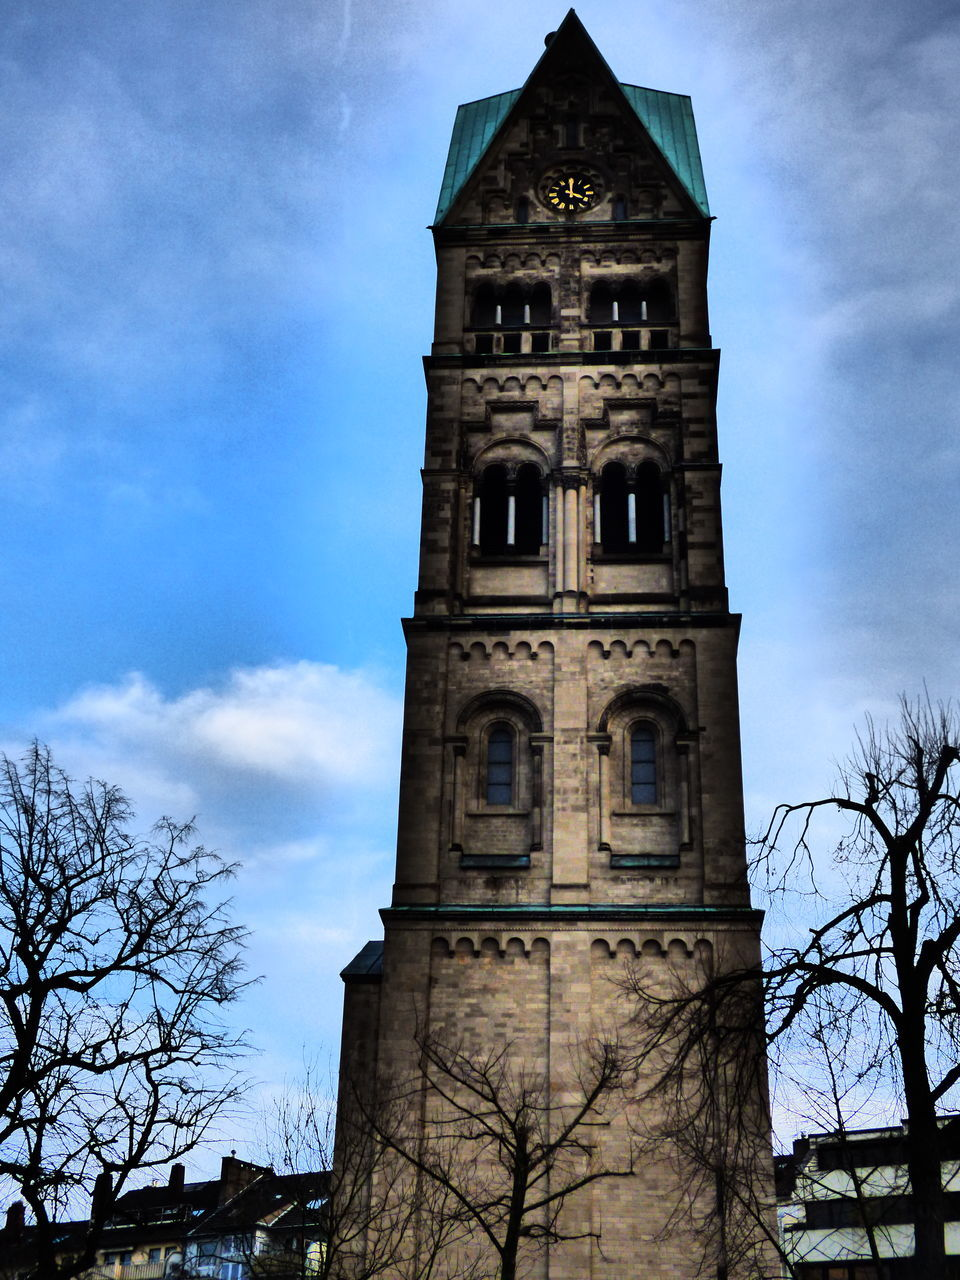 sky, cloud - sky, bare tree, low angle view, clock tower, tree, tower, religion, architecture, built structure, building exterior, day, place of worship, history, branch, no people, outdoors, spirituality, bell tower, nature, clock